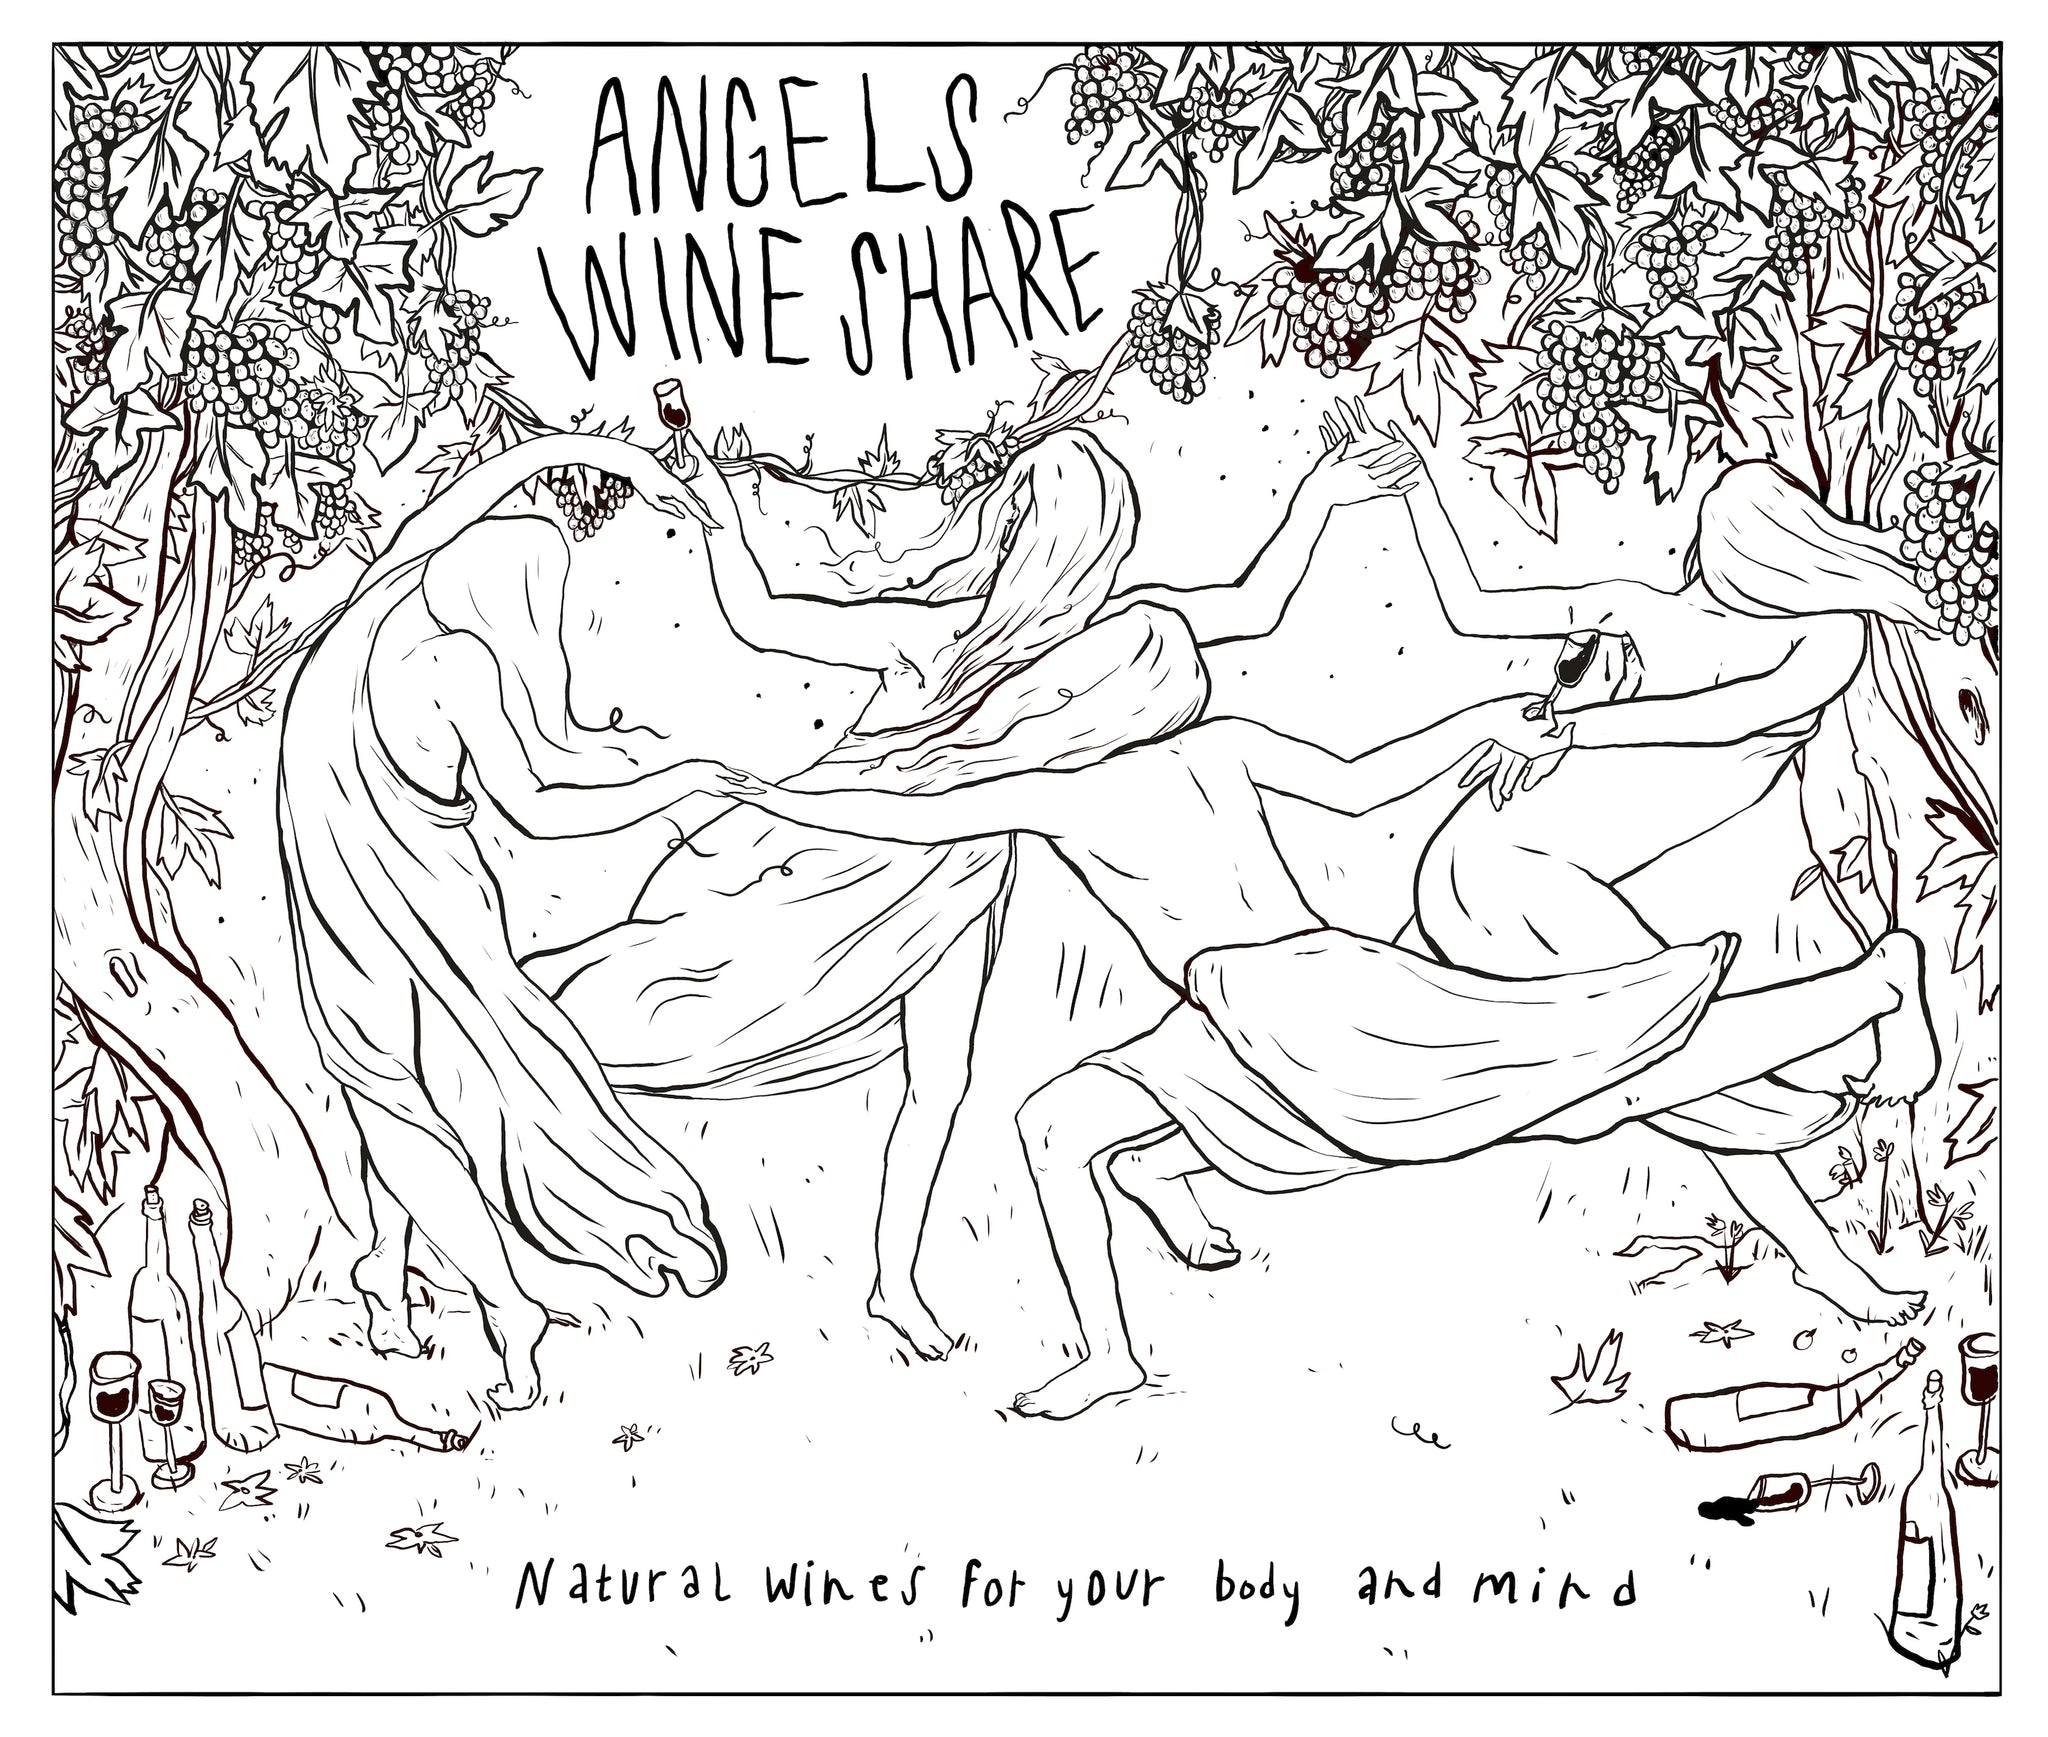 Angels Wine Share